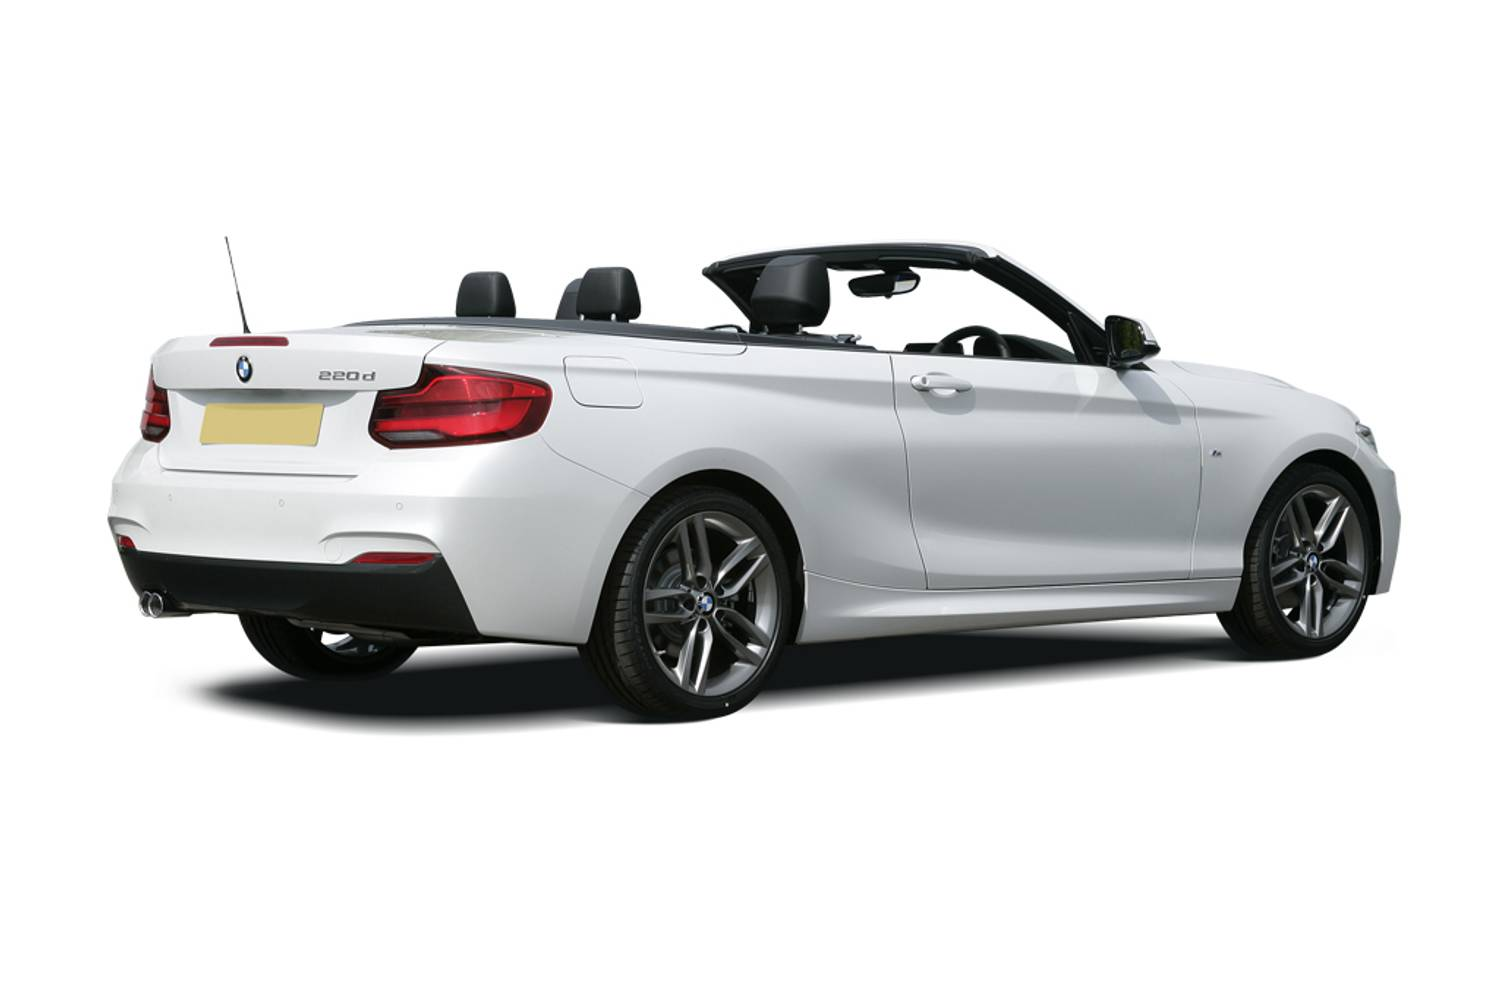 BMW 2 Series Convertible 2dr [Nav] Rear Three Quarter